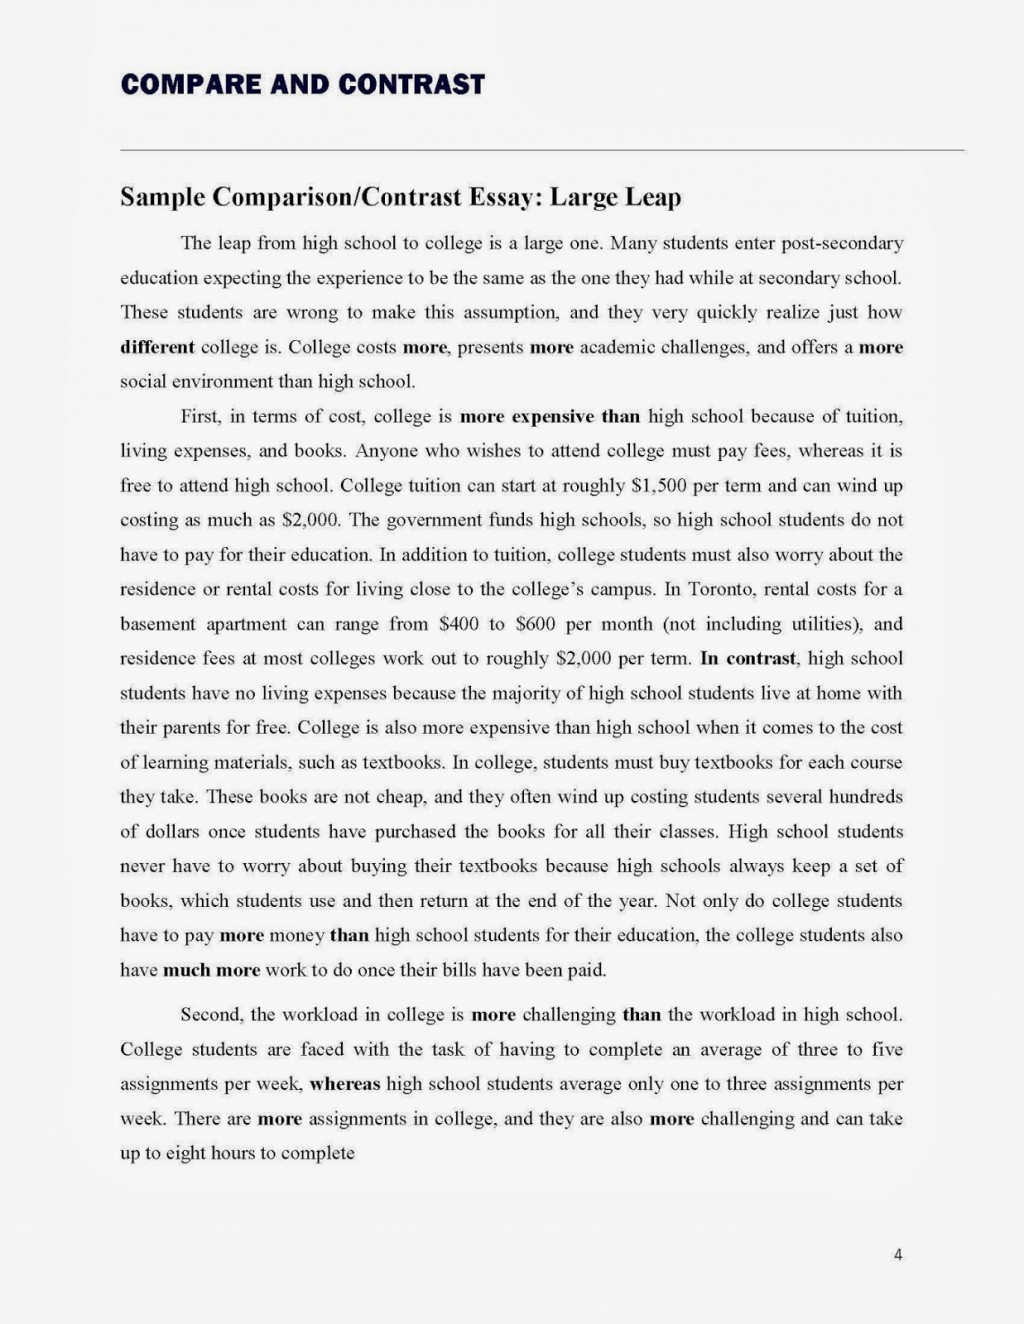 007 Essay Example How To Start Off Compare And Contrast Compare2band2bcontrast2bessay Page 4 Unusual A Do You Your Large